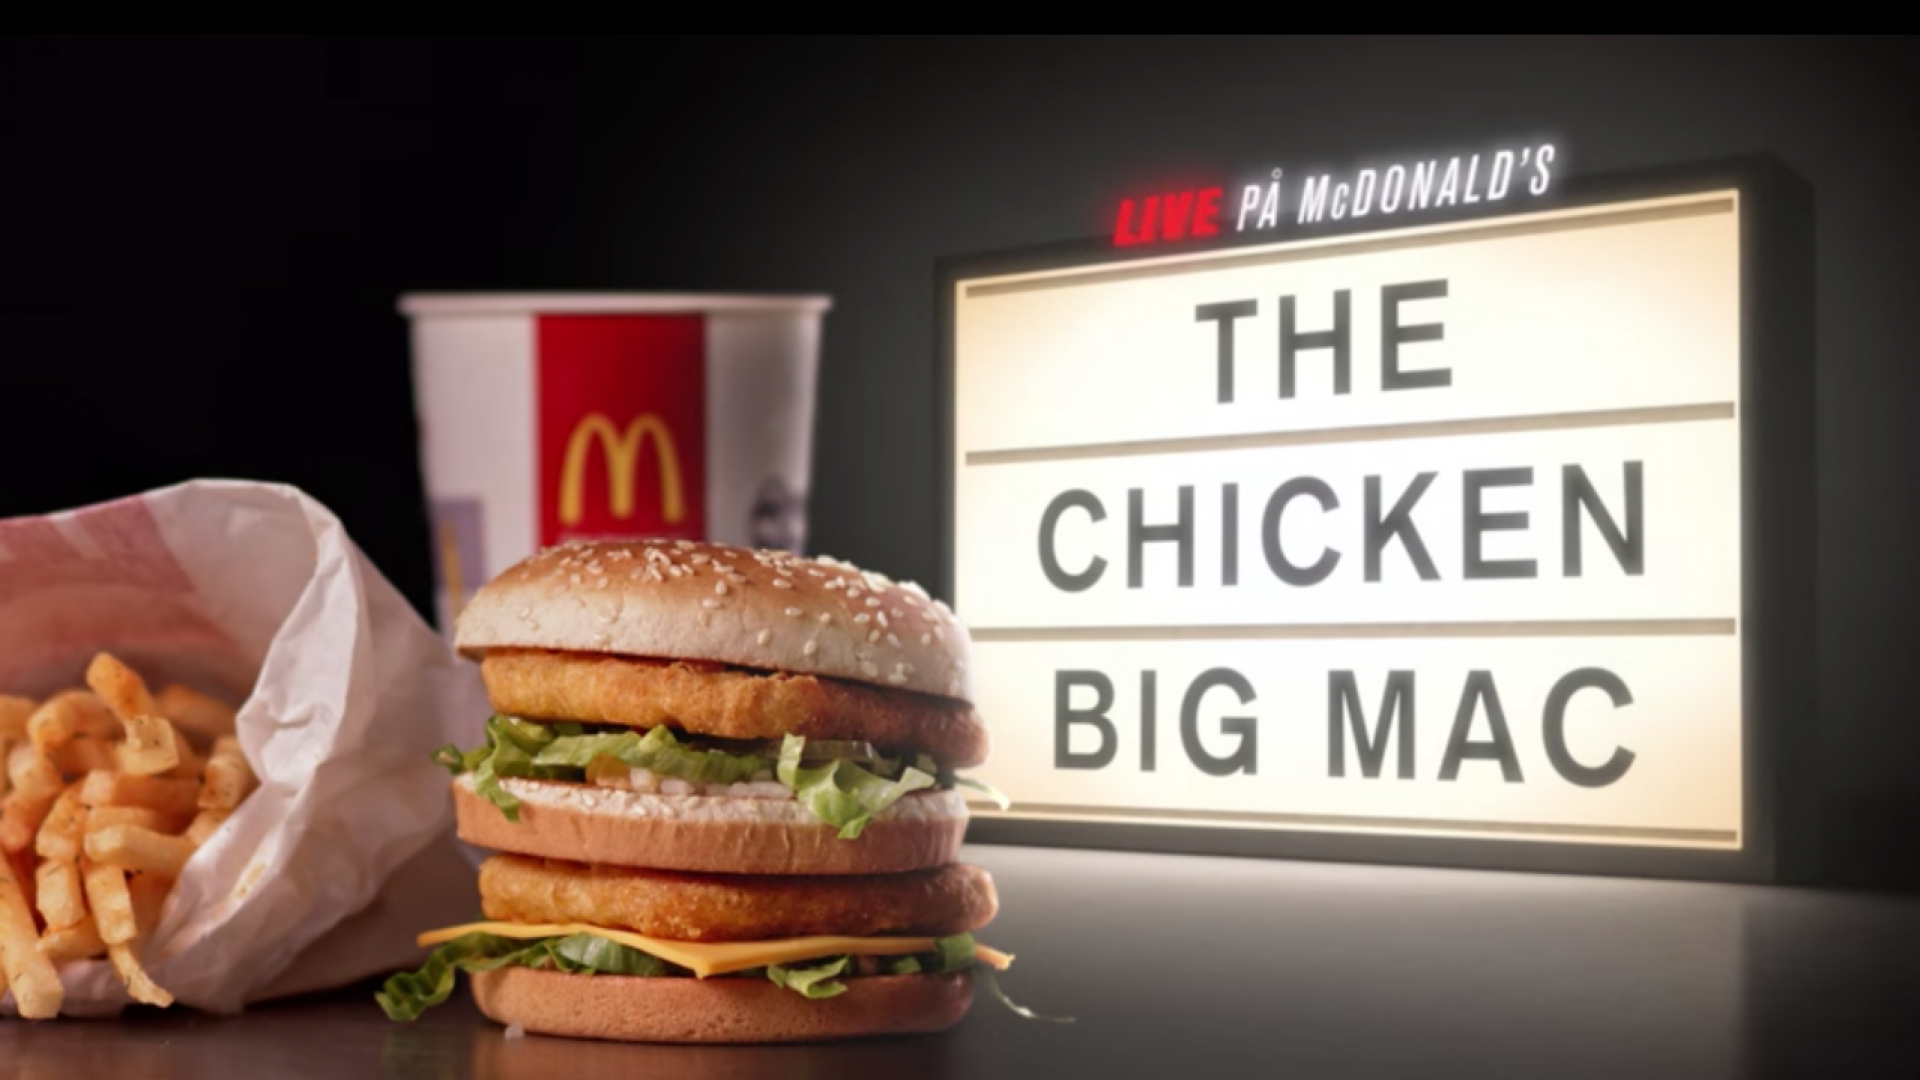 McDonald's Just Announced a Chicken Big Mac. There's Only One Problem if You Want One